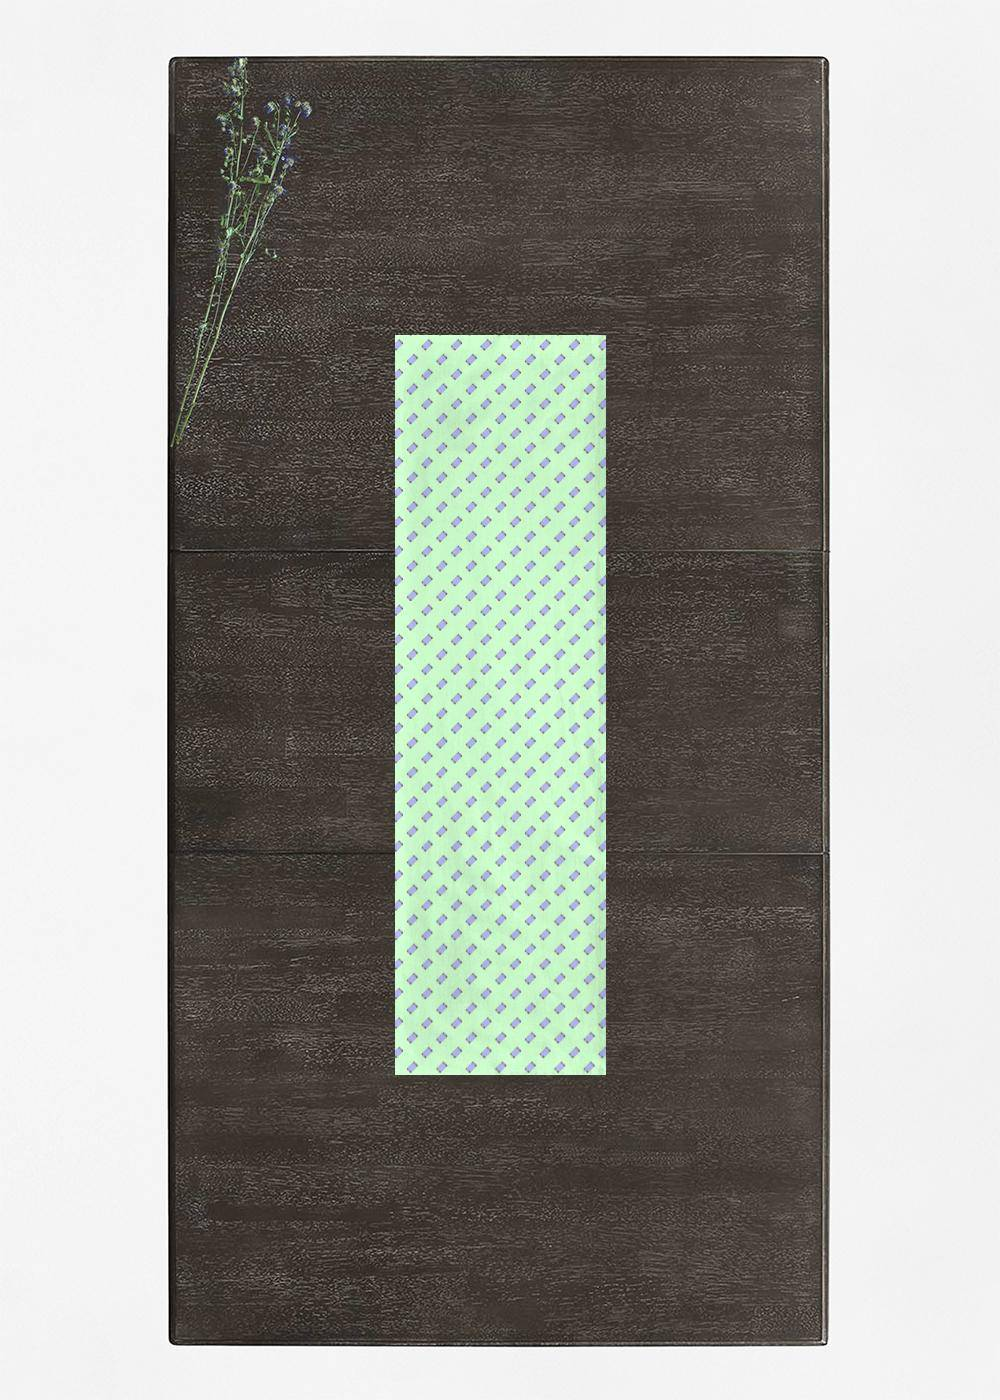 VIDA Table Runner - Mobile Phones On Green in Green by VIDA Original Artist  - Size: Short